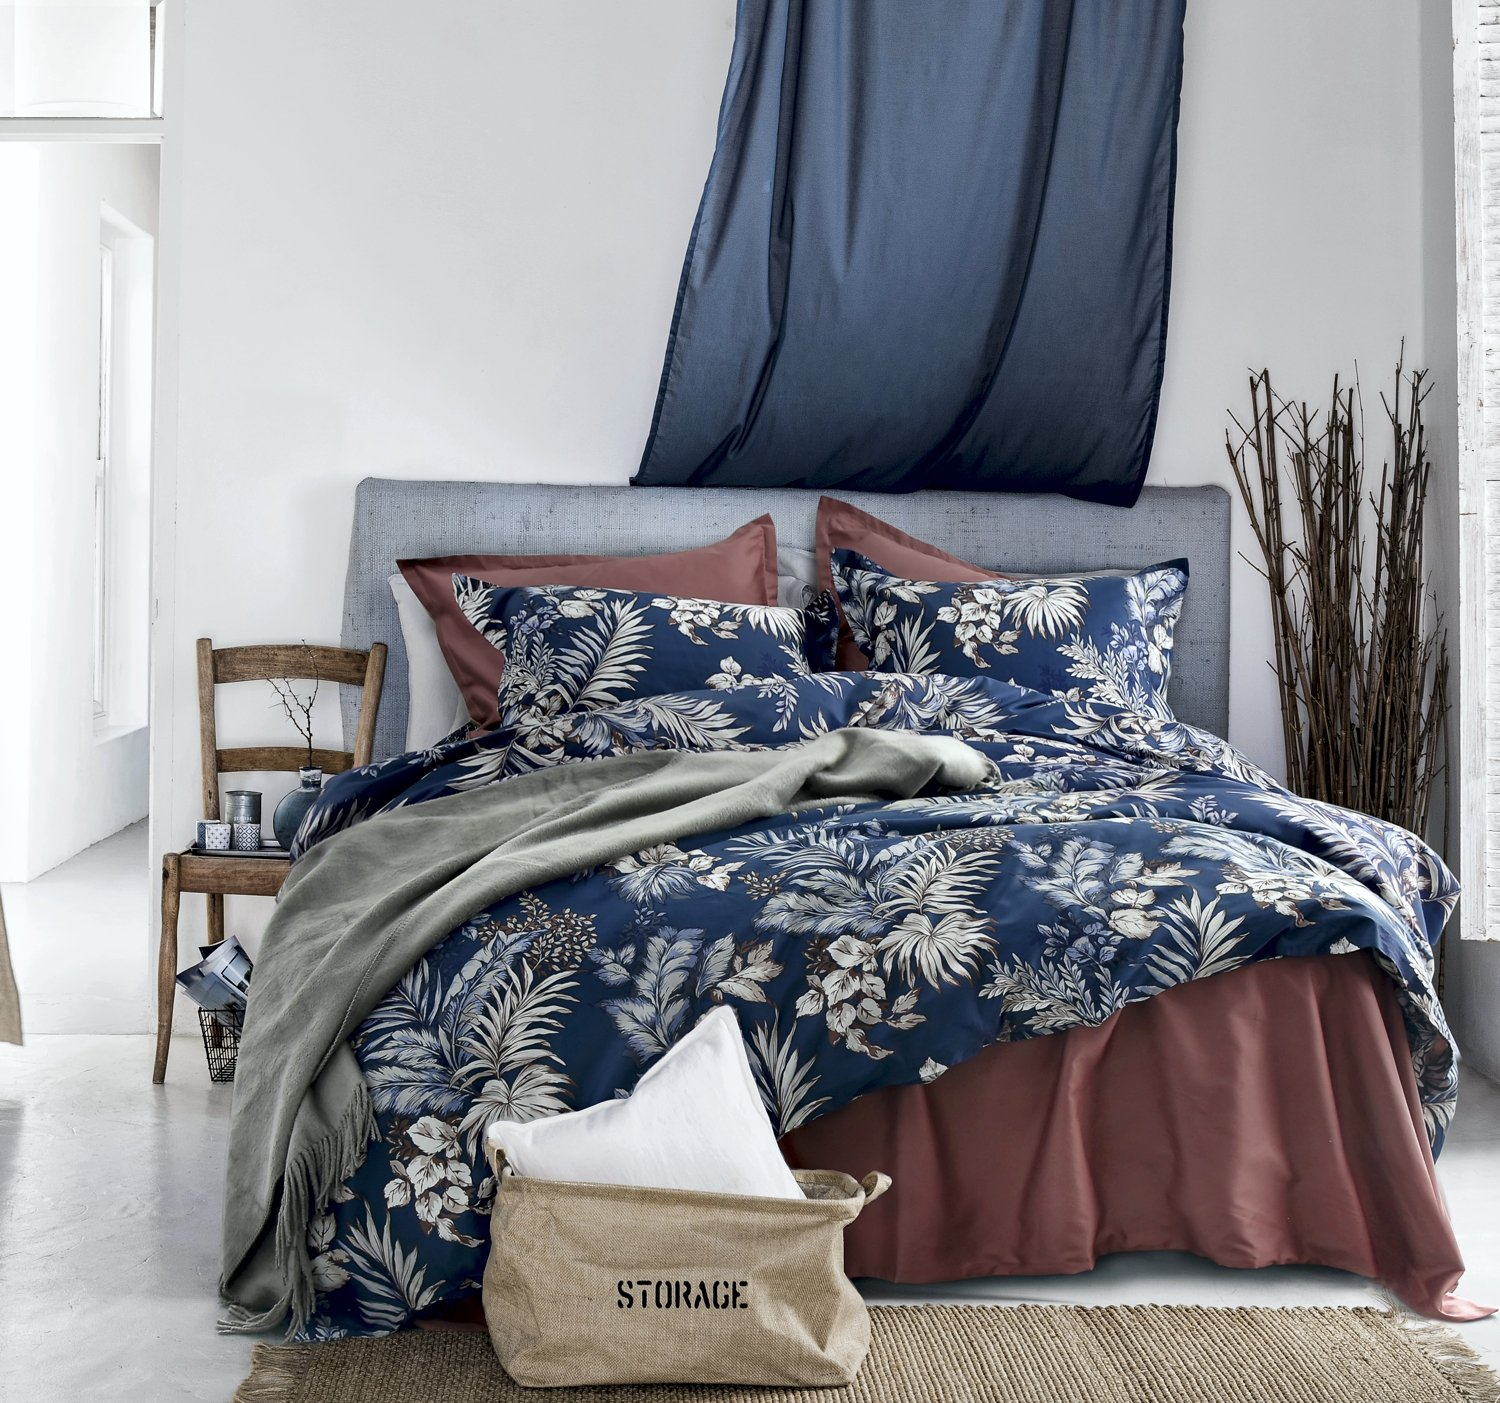 Eikei Midnight Blue Botanical Print Duvet Quilt Cover Egyptian Cotton Bedding Set Modern Luxury Minimal Palm Leaf Dark Navy Taupe Floral Watercolor Design (Queen)